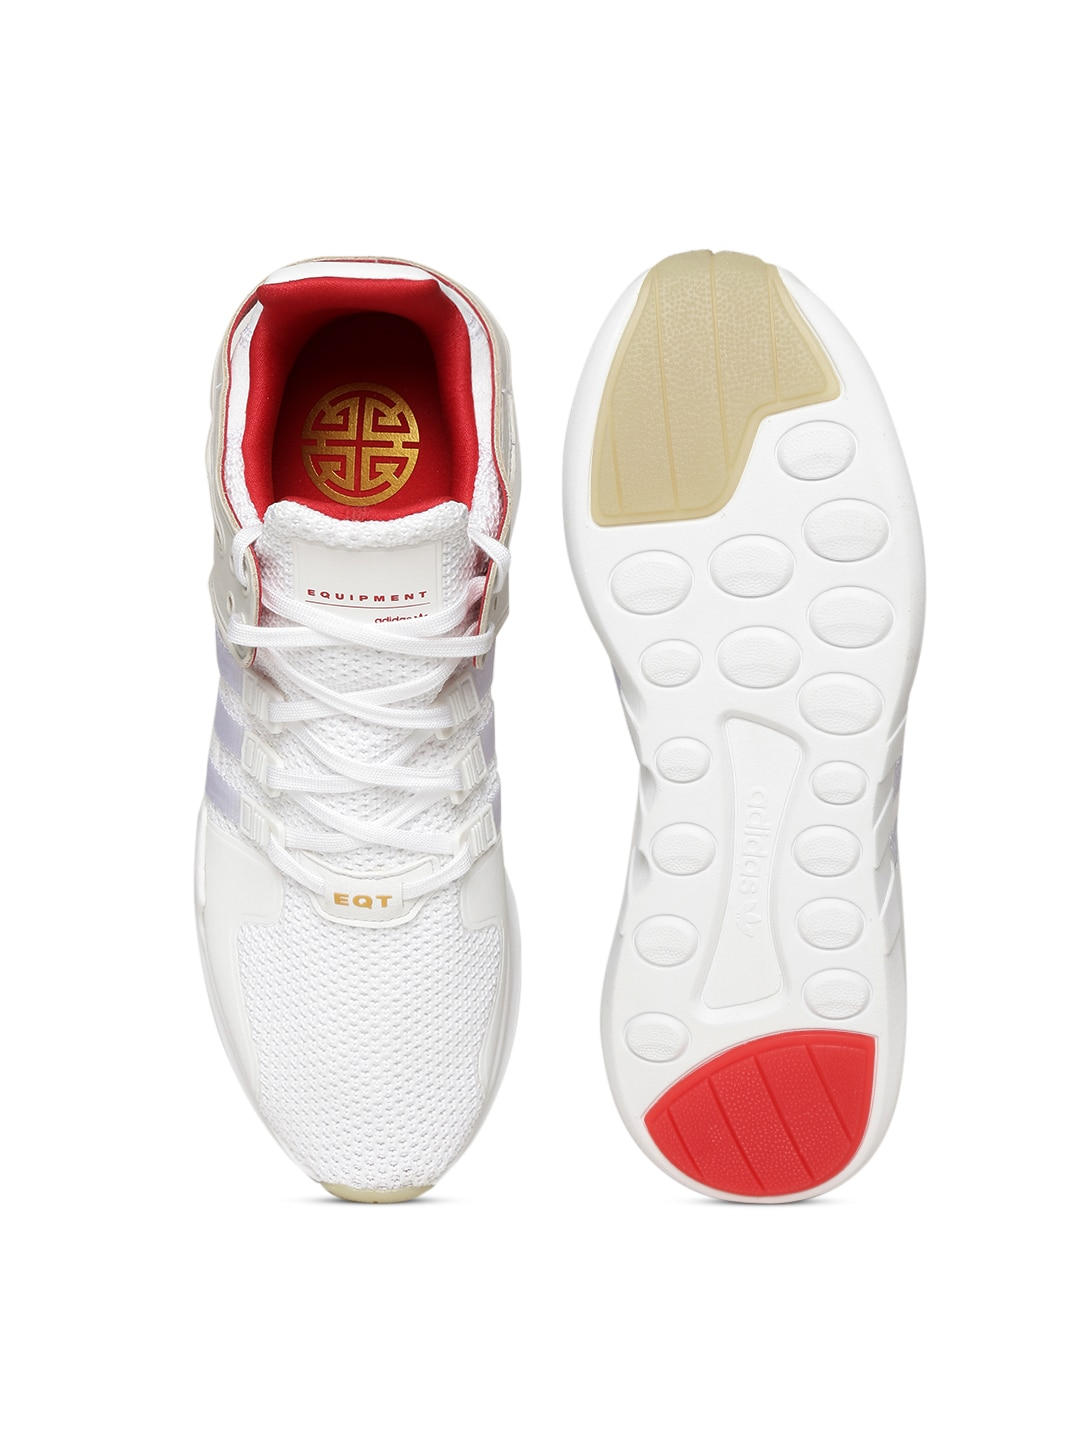 adidas gazelle red kids curtains adidas yeezy boost 350 white